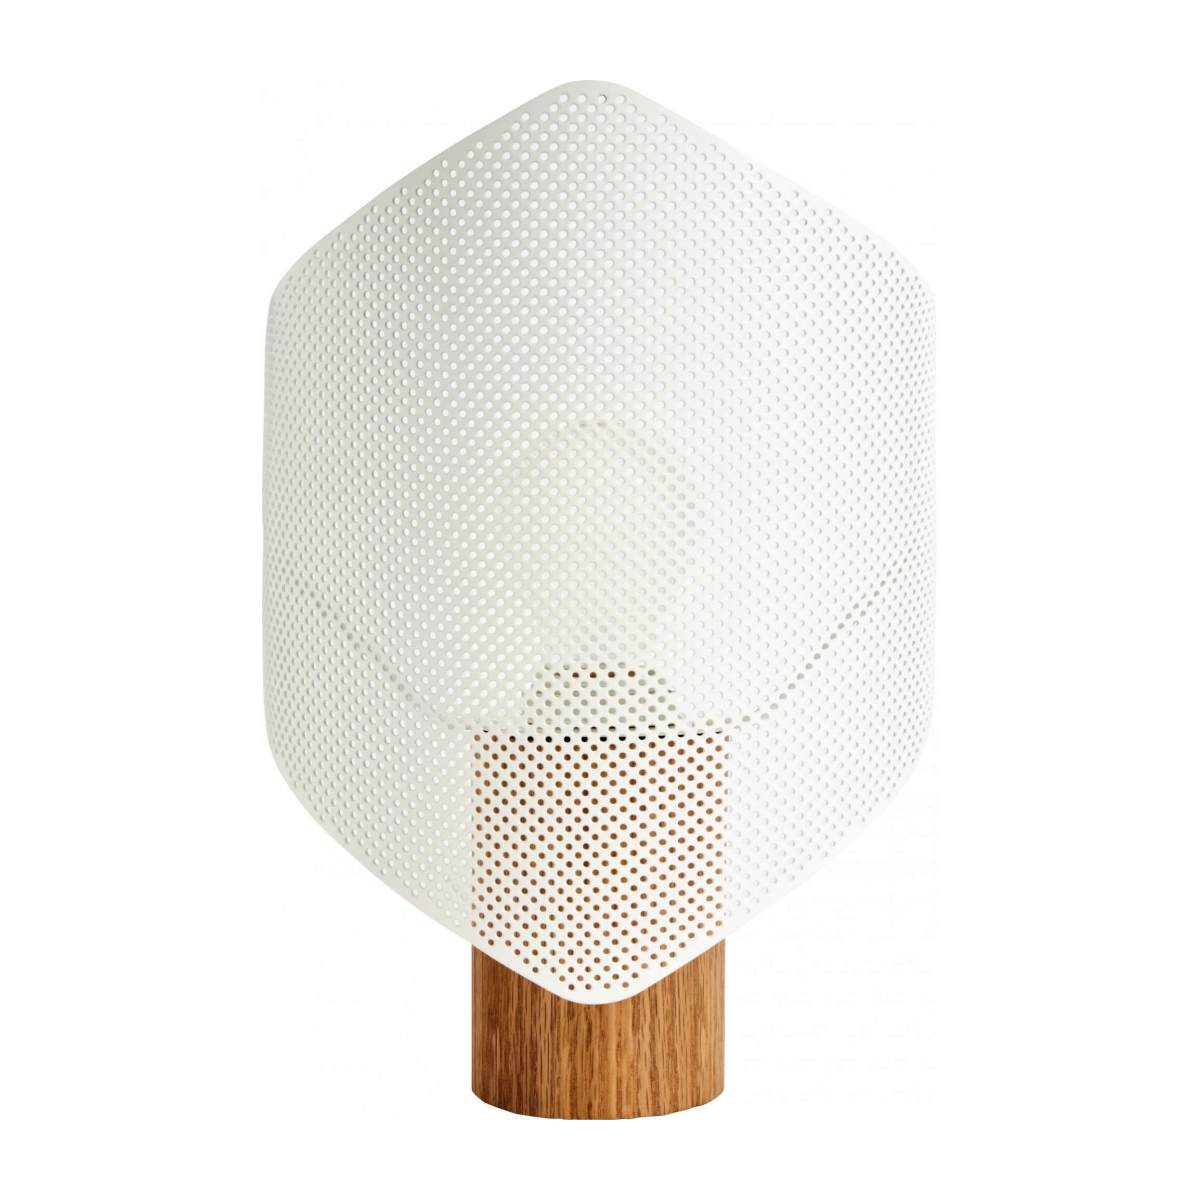 Lampe de table blanche n°4